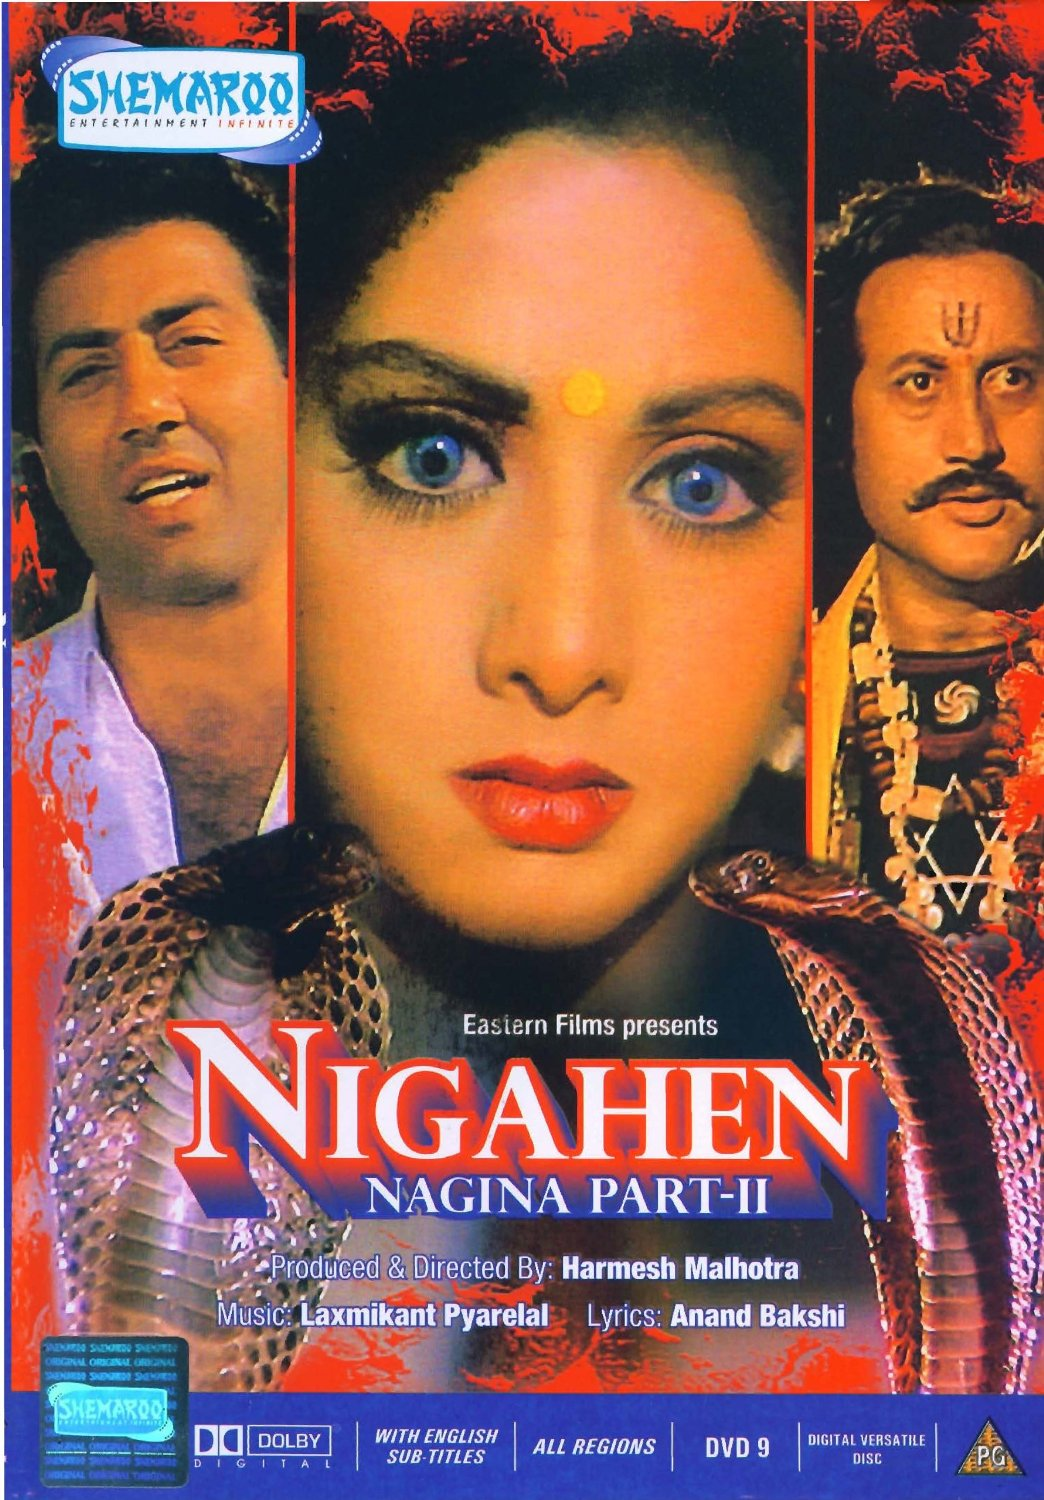 Nagina picture hindi mein video calling